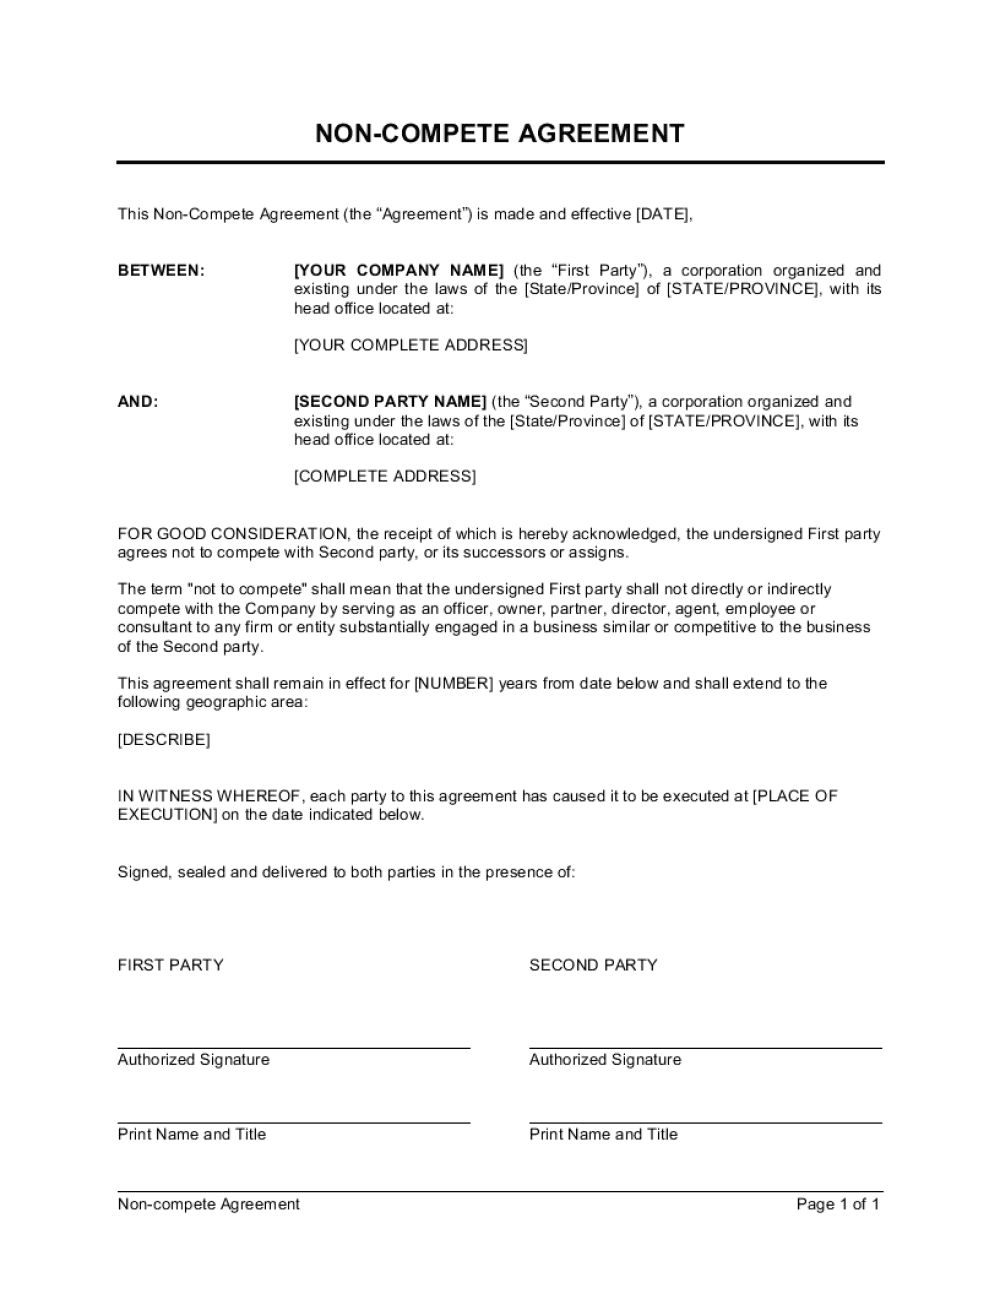 Business To Business Non Compete Agreement Template Free Printable Agreement Competing Templates Non compete agreement template free